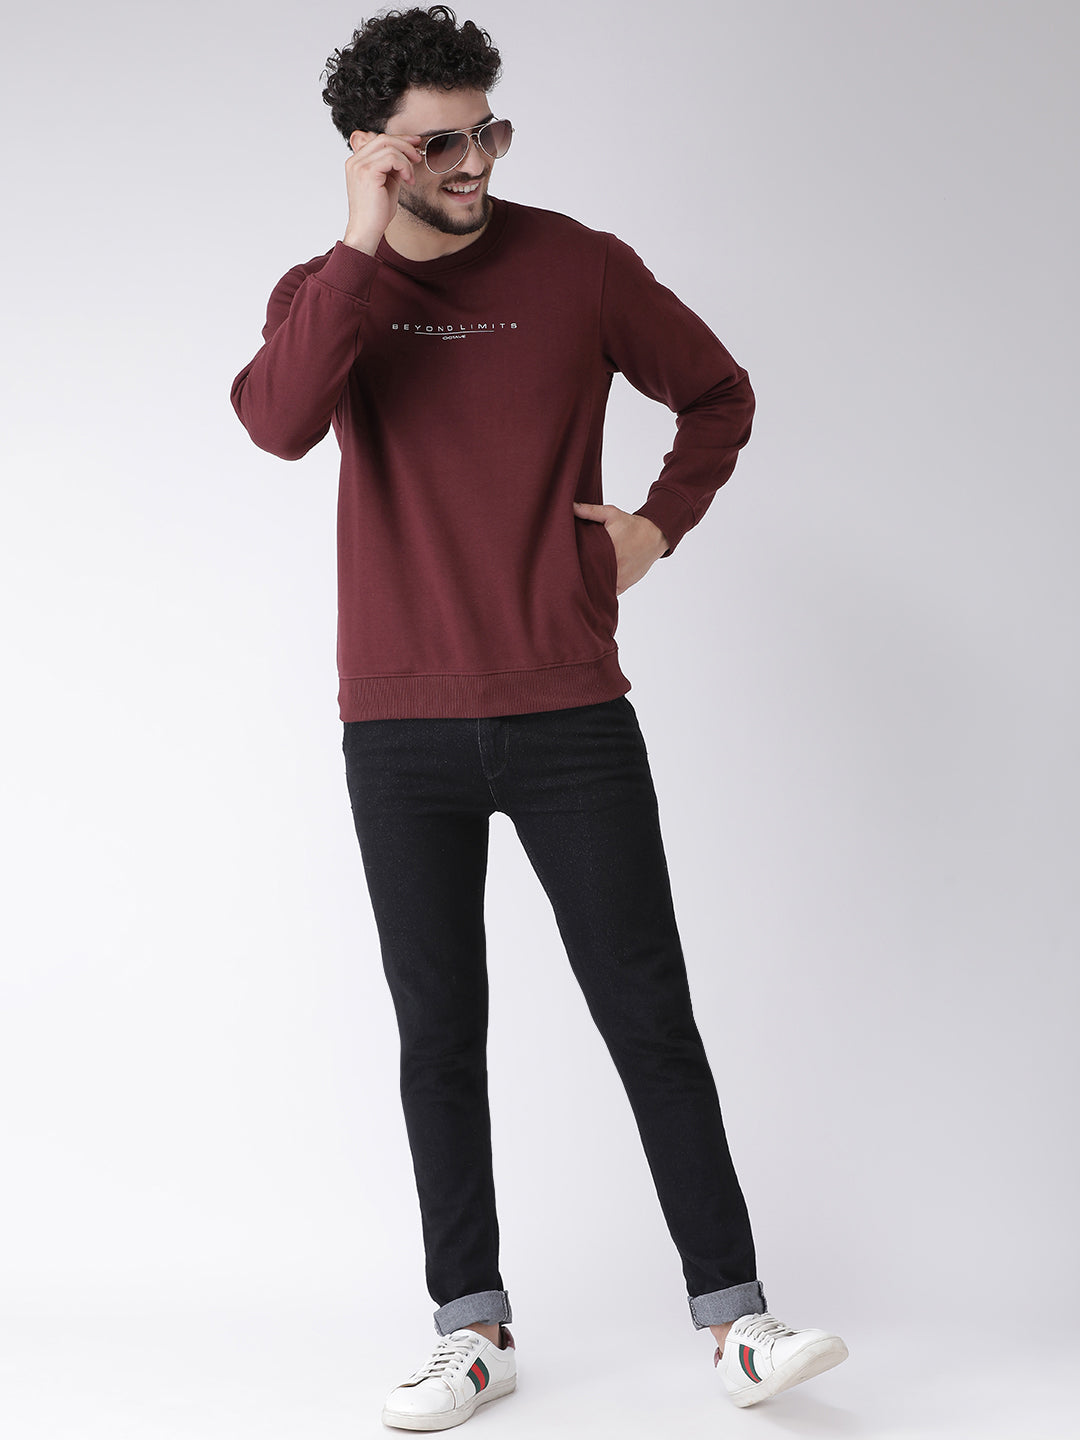 Octave Apparels Maroon Sweatshirt for Men